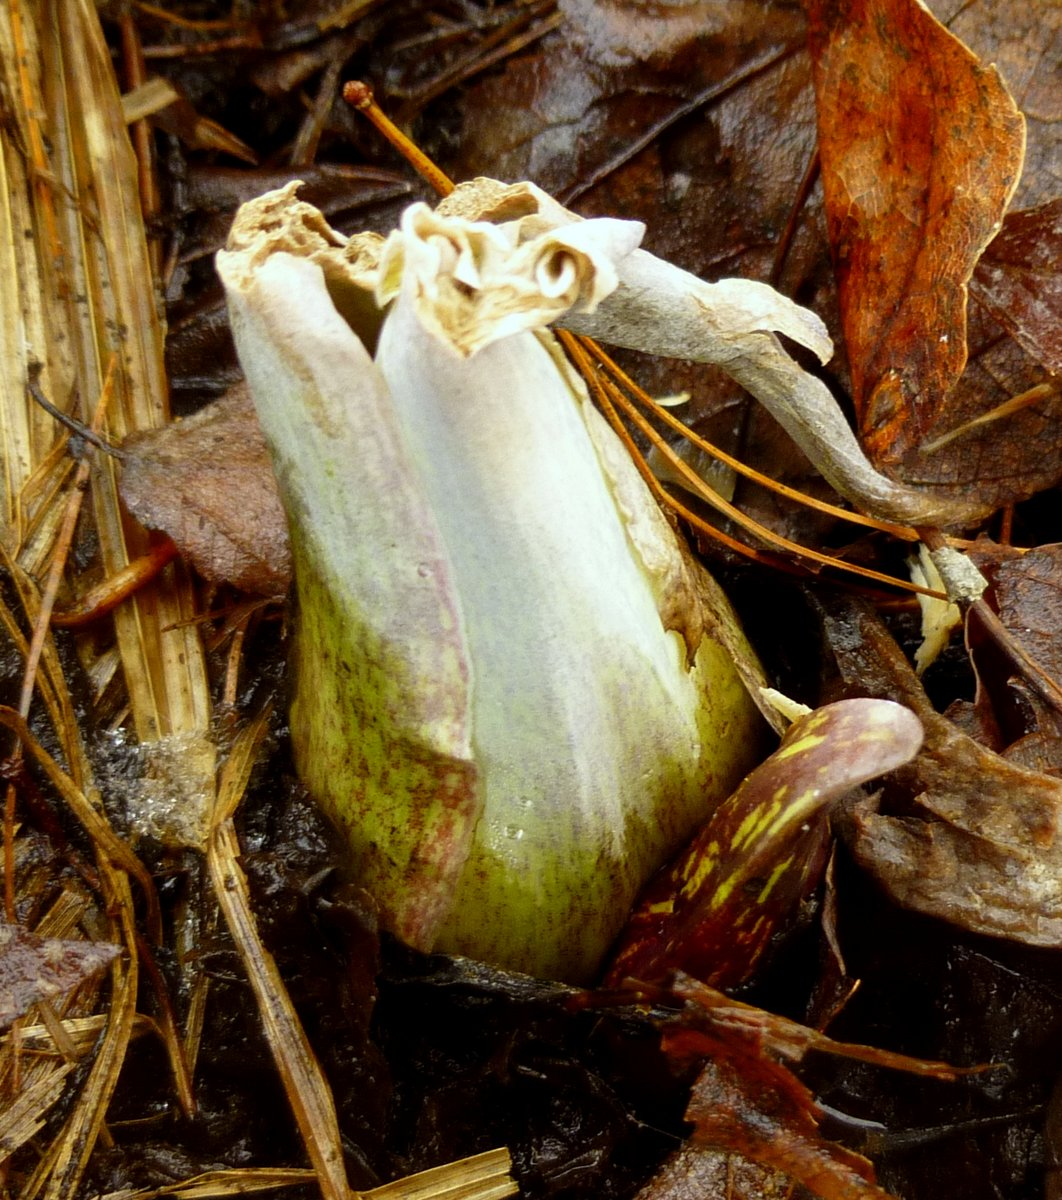 3. Skunk Cabbage